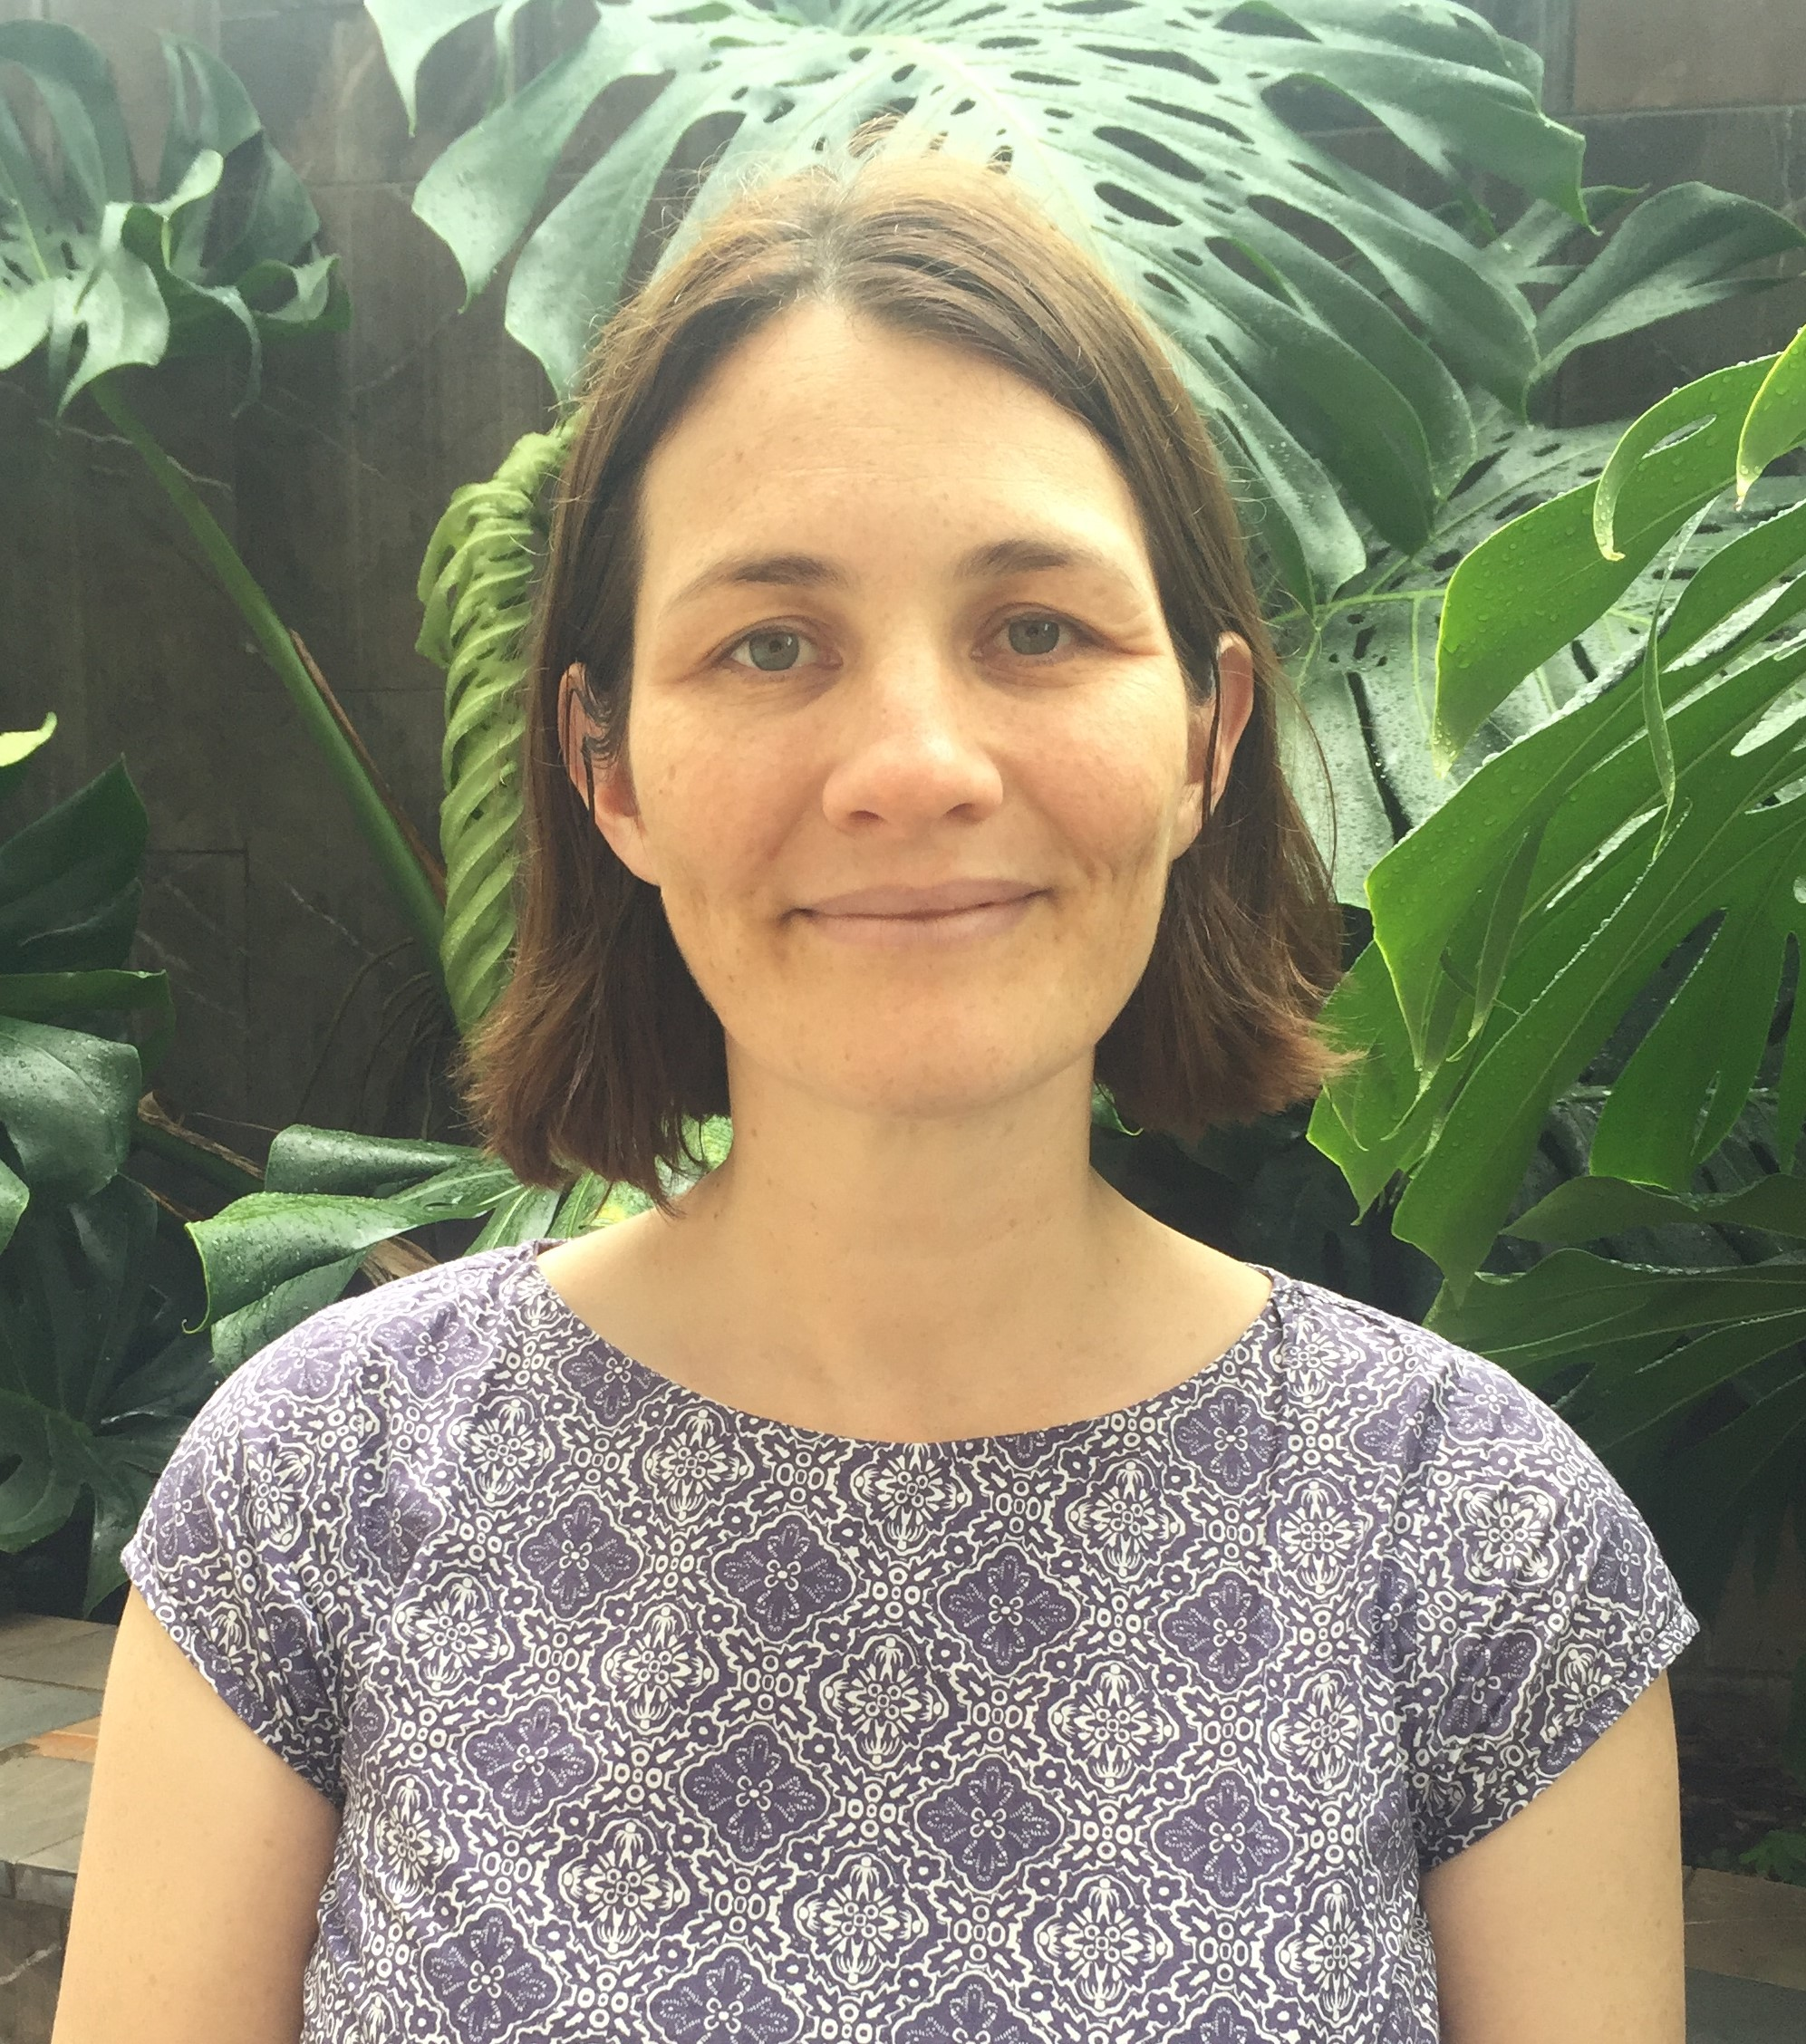 Helen Gunter, Genomics Advisor - Helen joins Queensland Genomics with 15 years of molecular biology experience and two years as the Project Manager, Edinburgh Genomics. Her research interest is in genotype x phenotype interactions. Helen brings a depth of experience in the technical and experimental design aspects of Clinical Genomics.